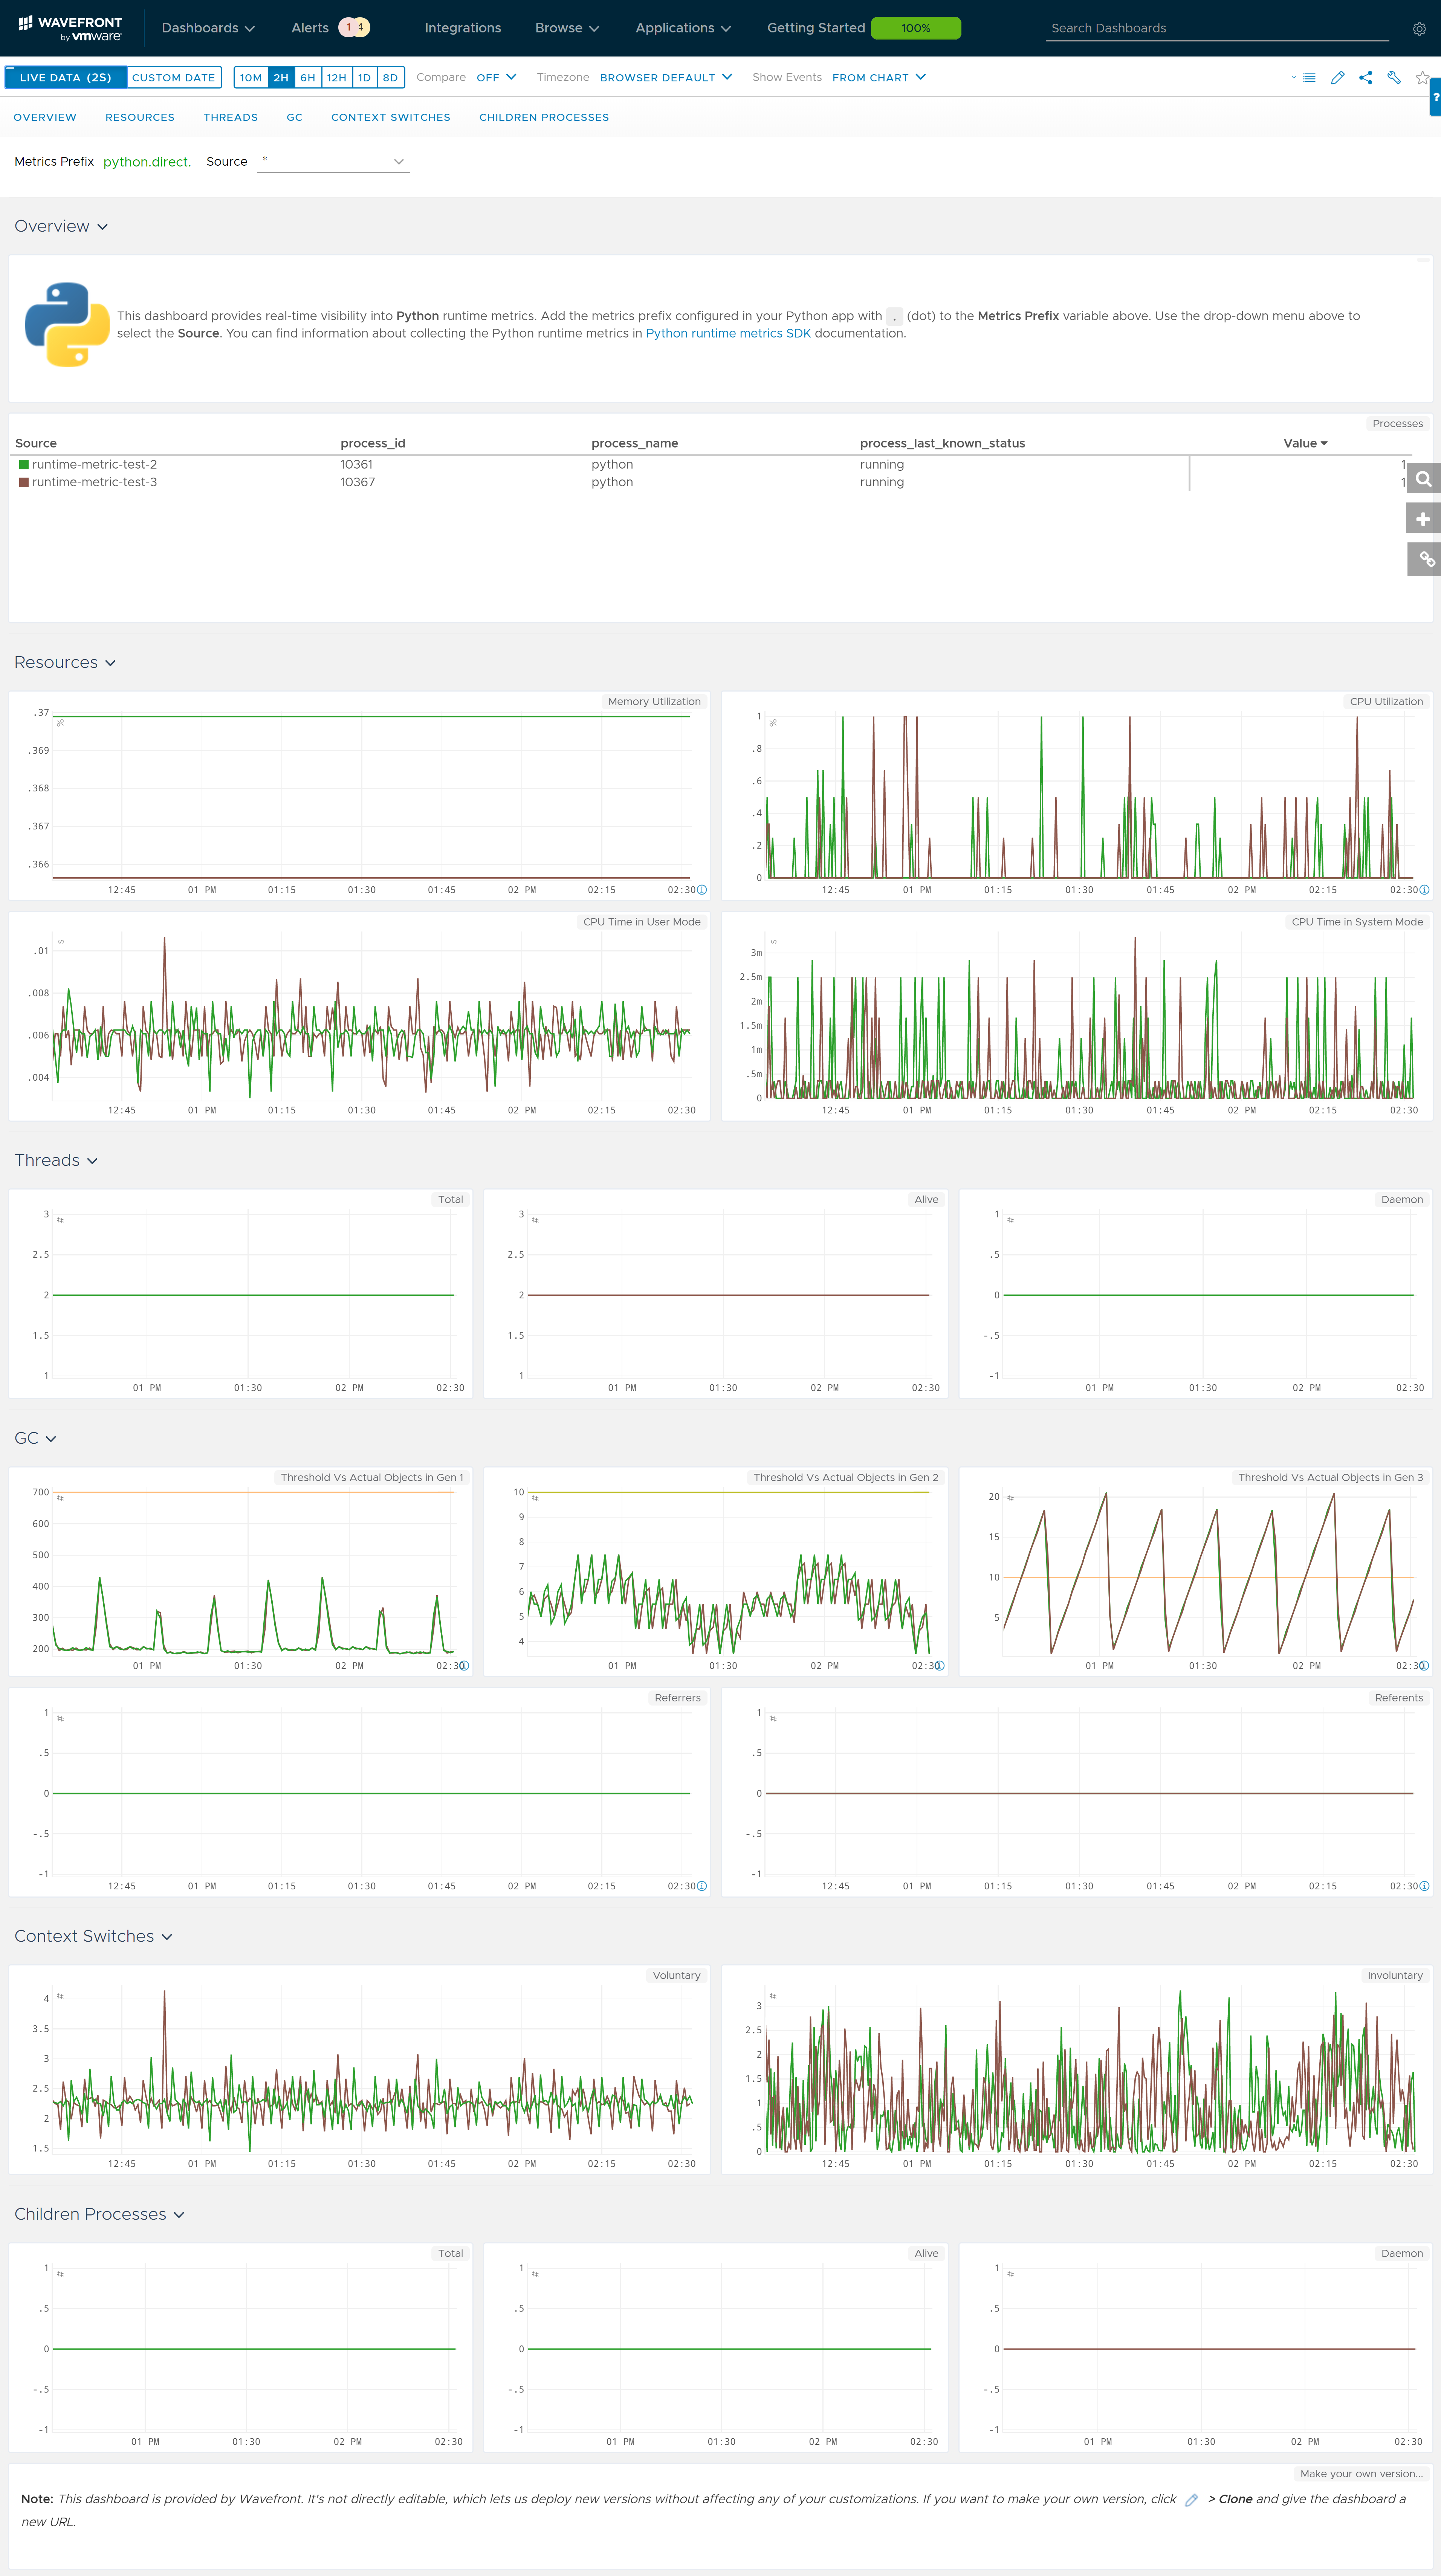 images/python_runtime_dashboard.png